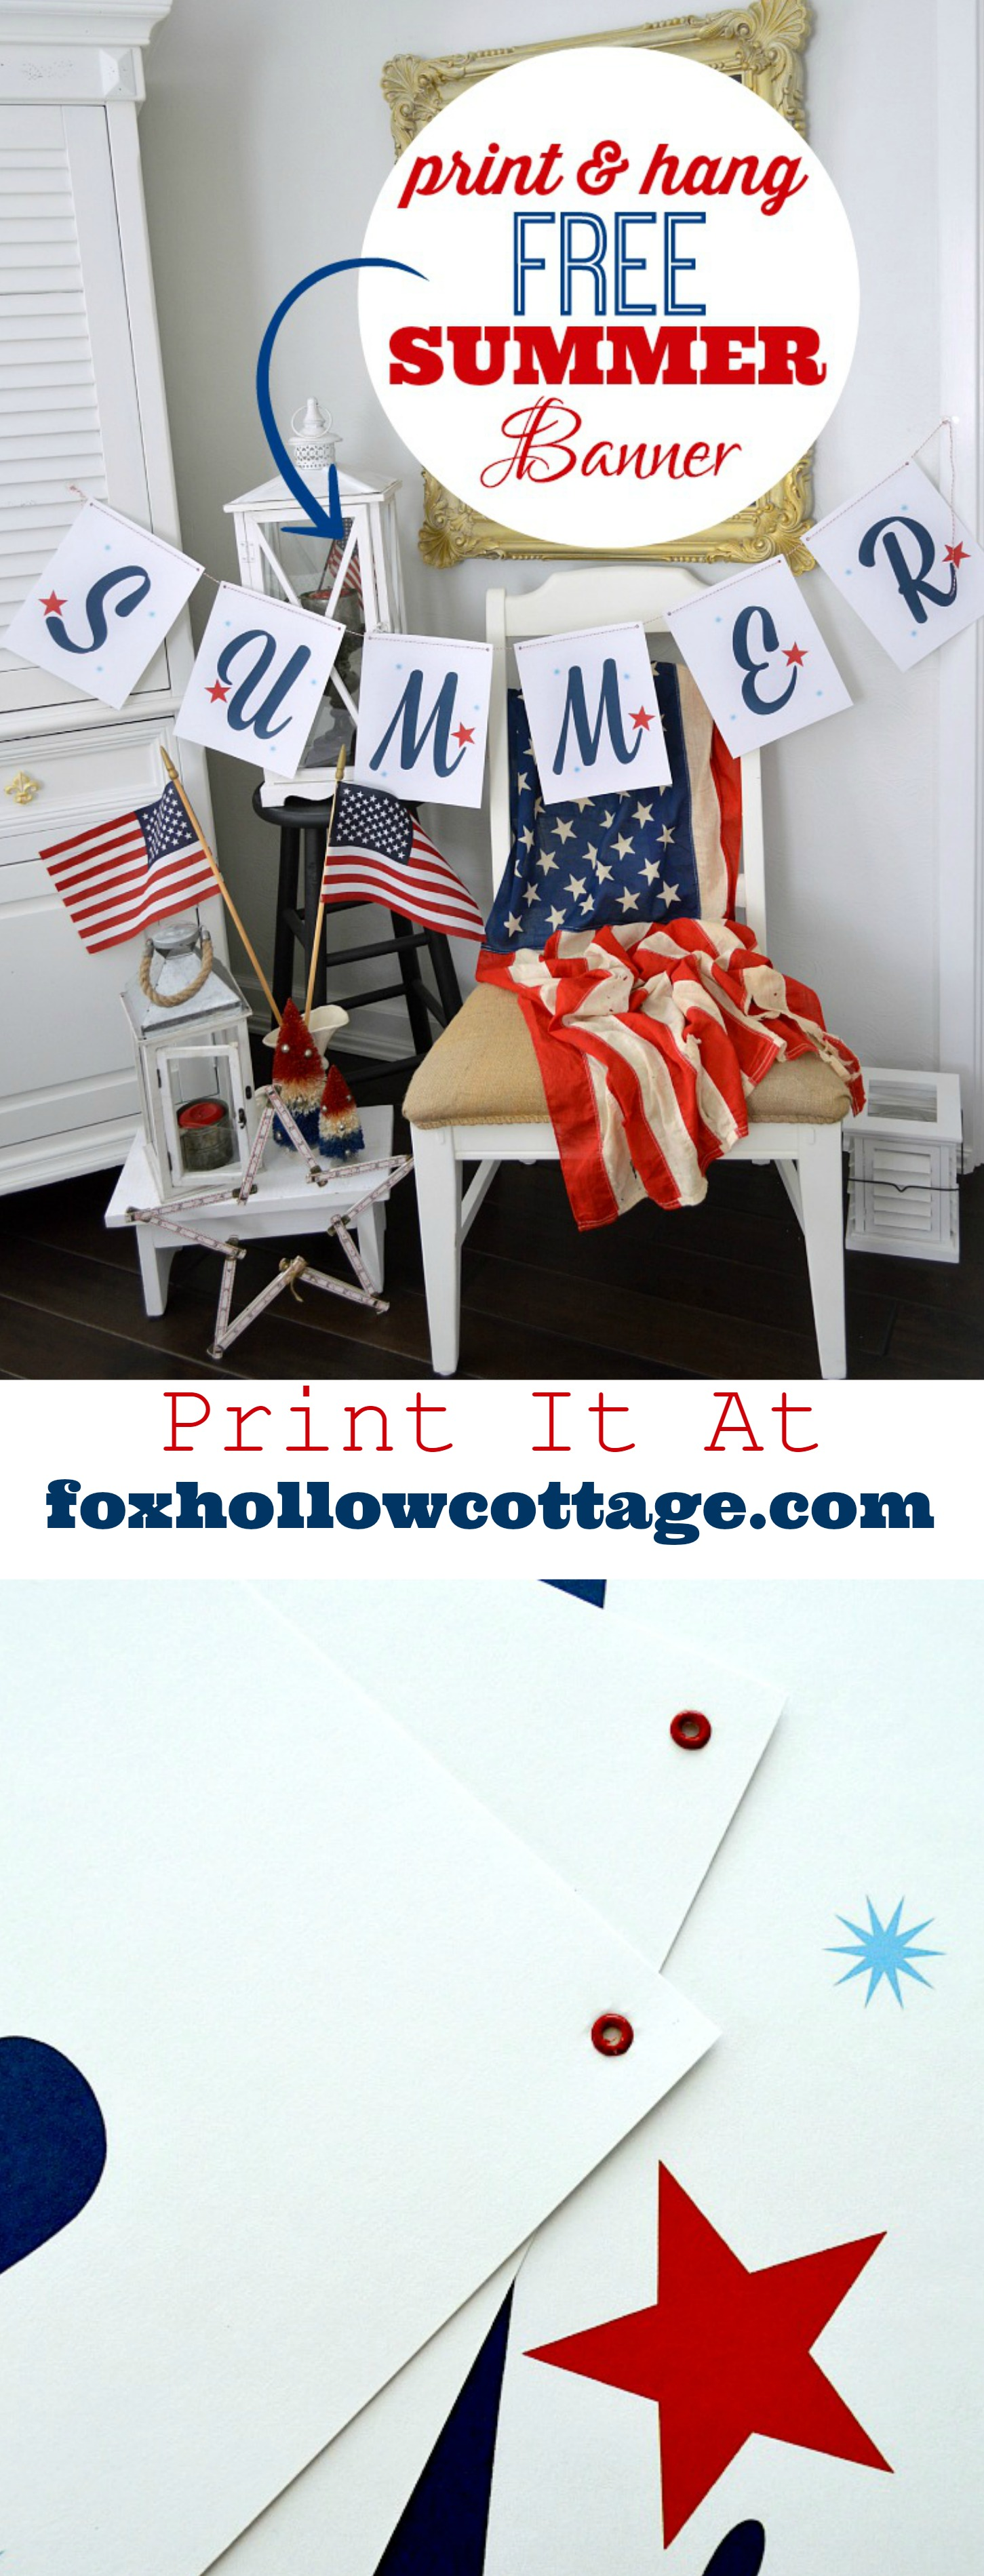 Free SUMMER banner printable - print it at foxhollowcottage.com Fourth Of July